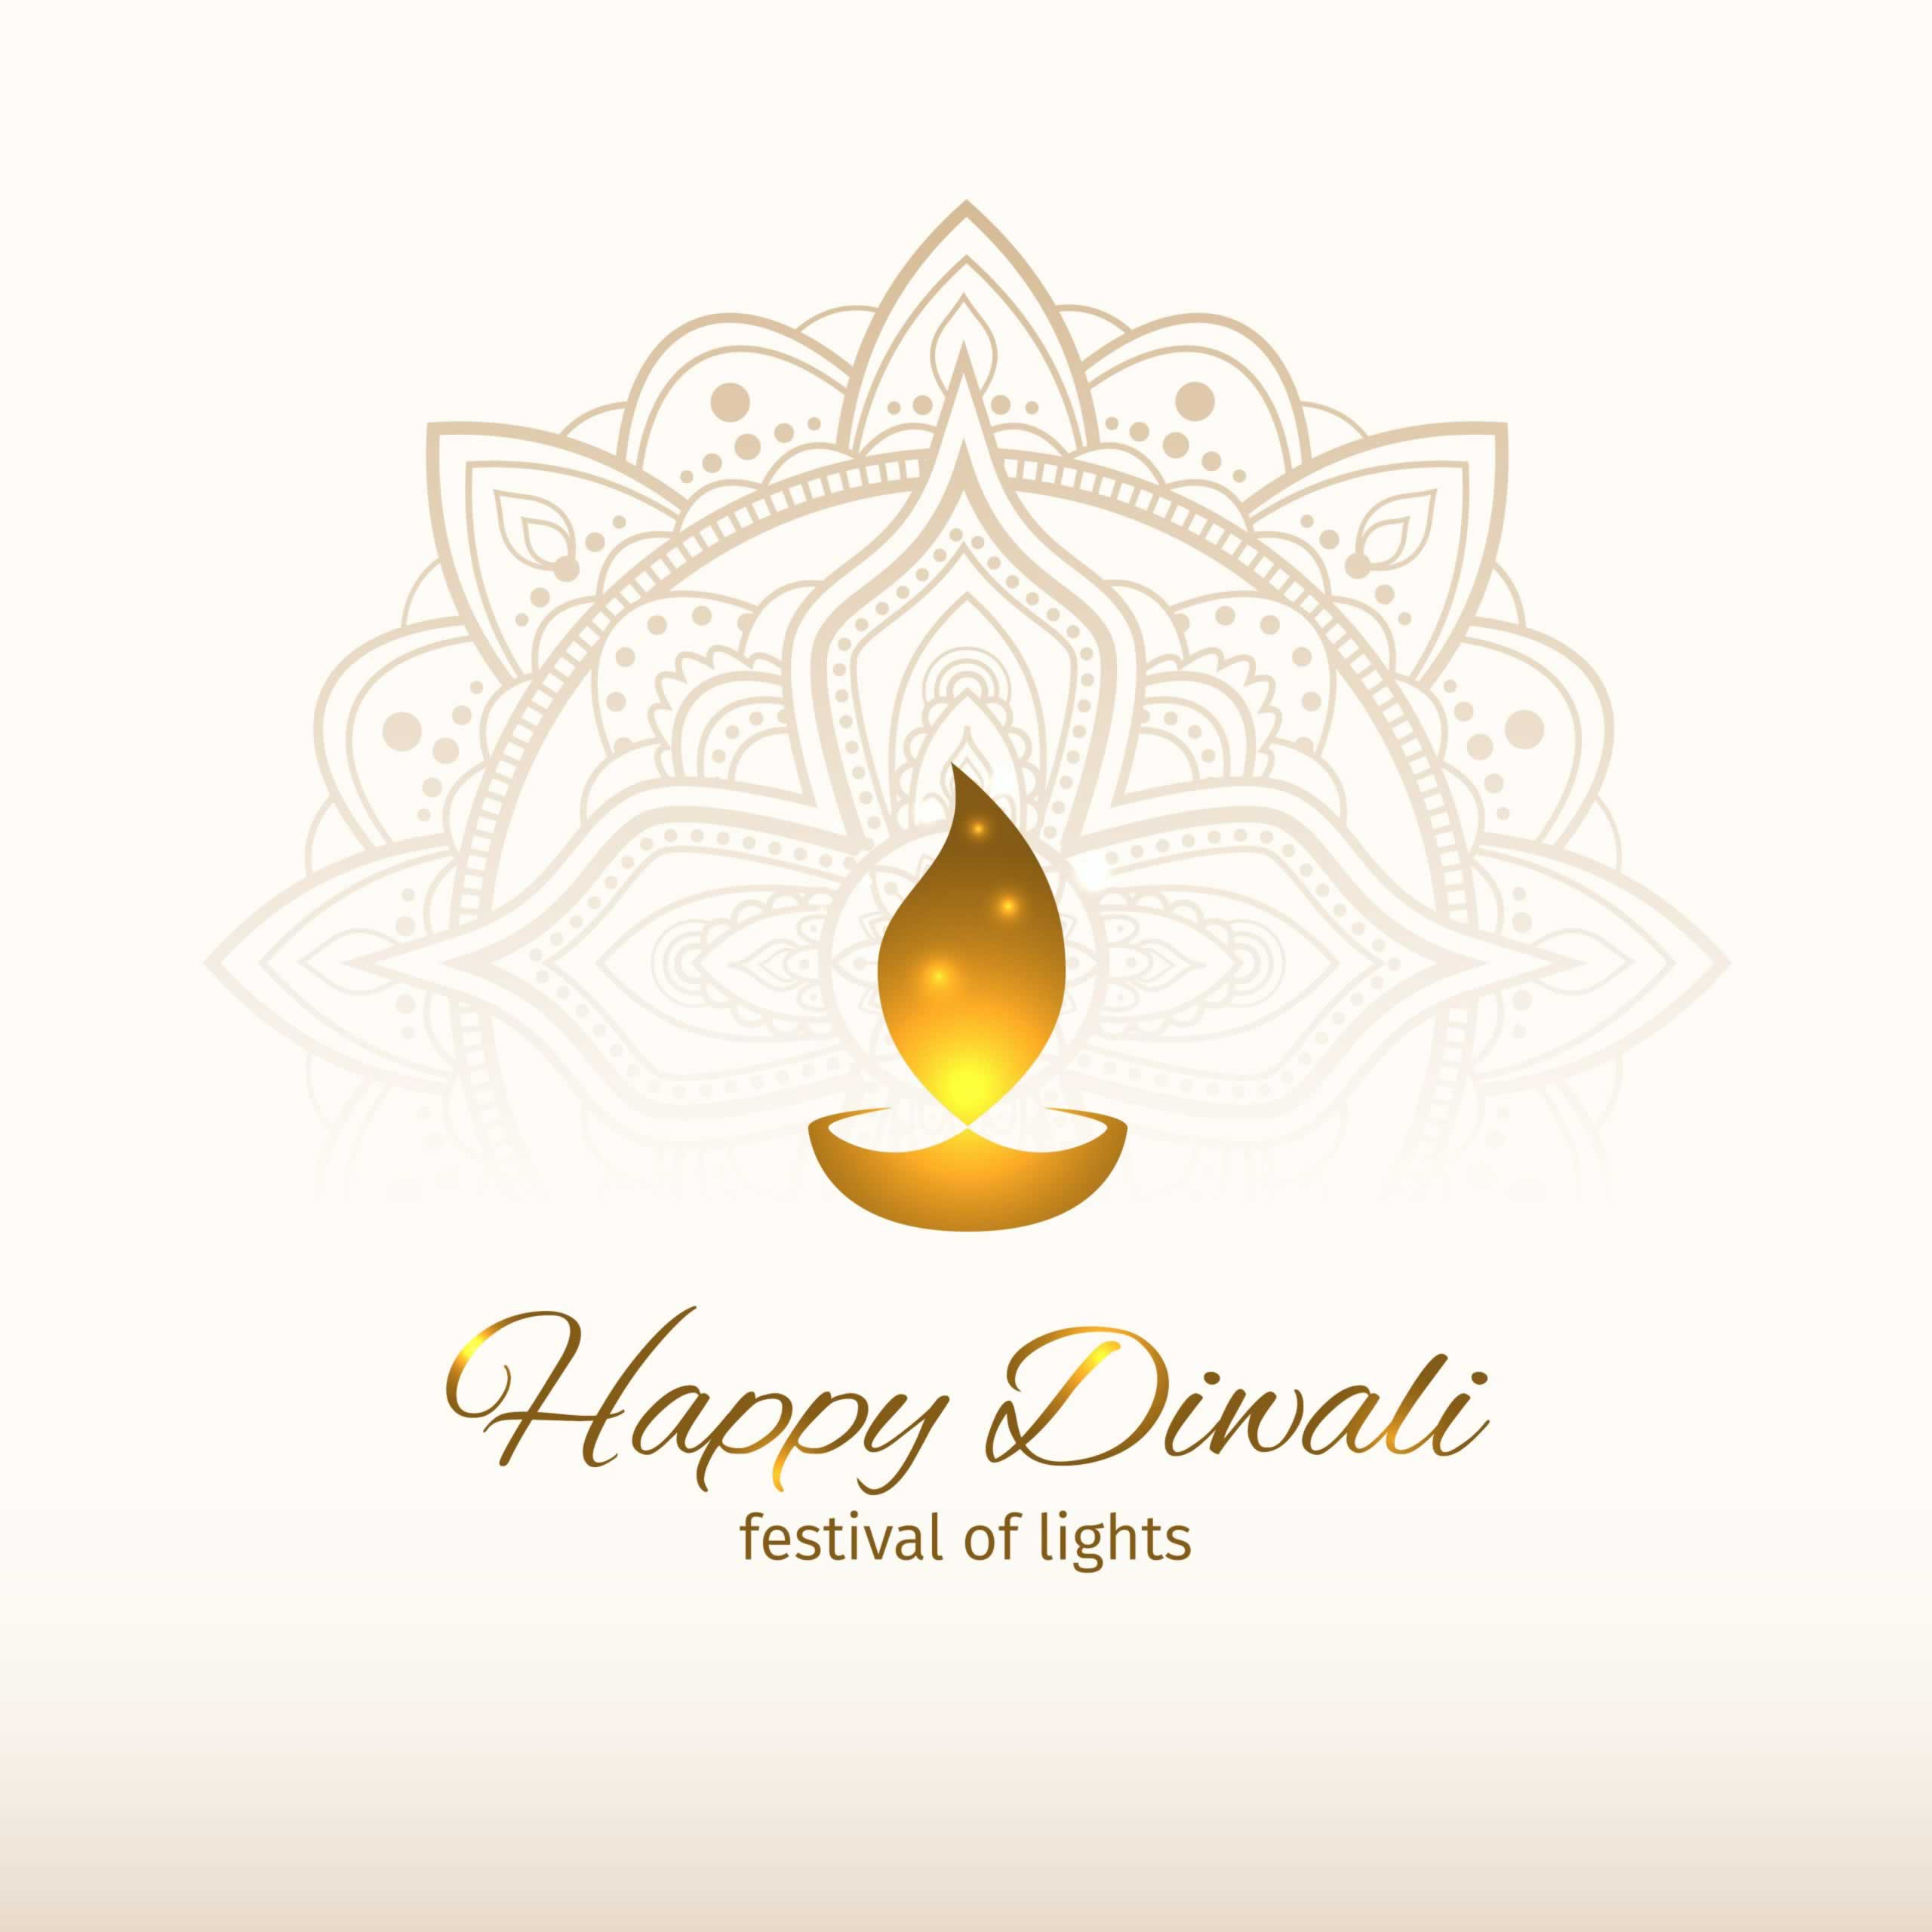 Happy Diwali, festival of lights. White background with mandala and vector illustration